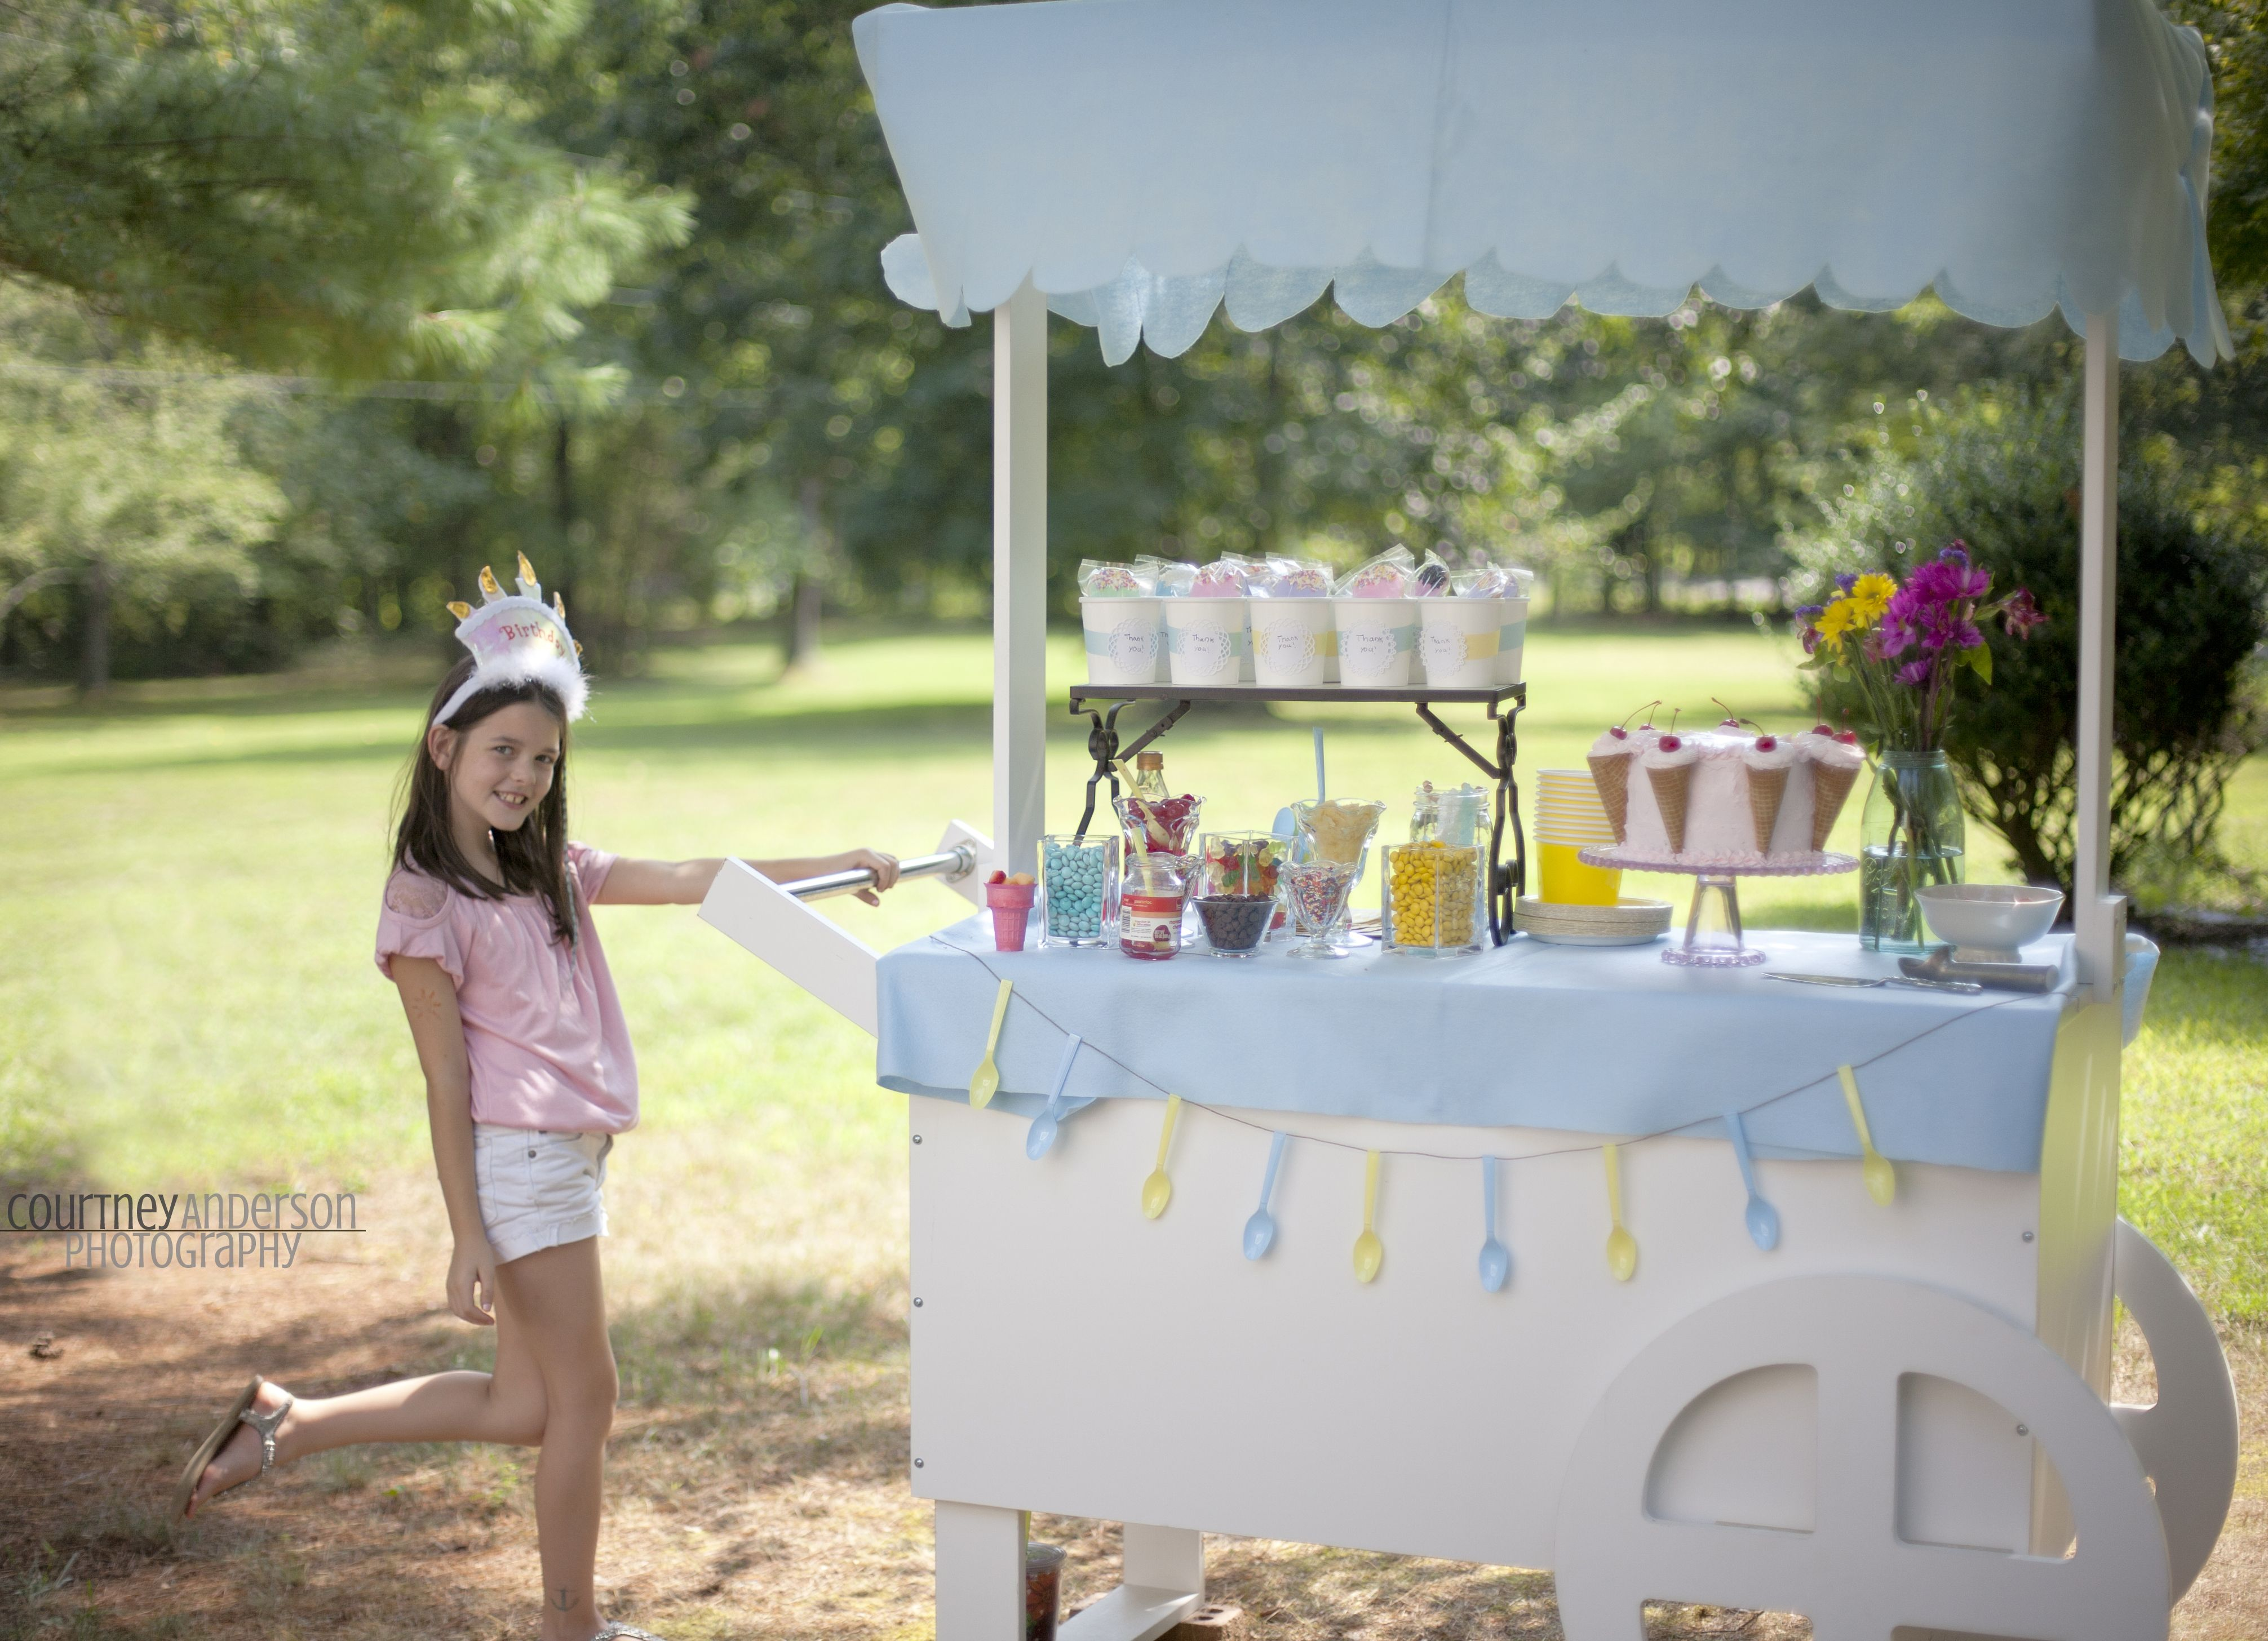 Adorable Ice Cream Birthday Party Complete With Cart